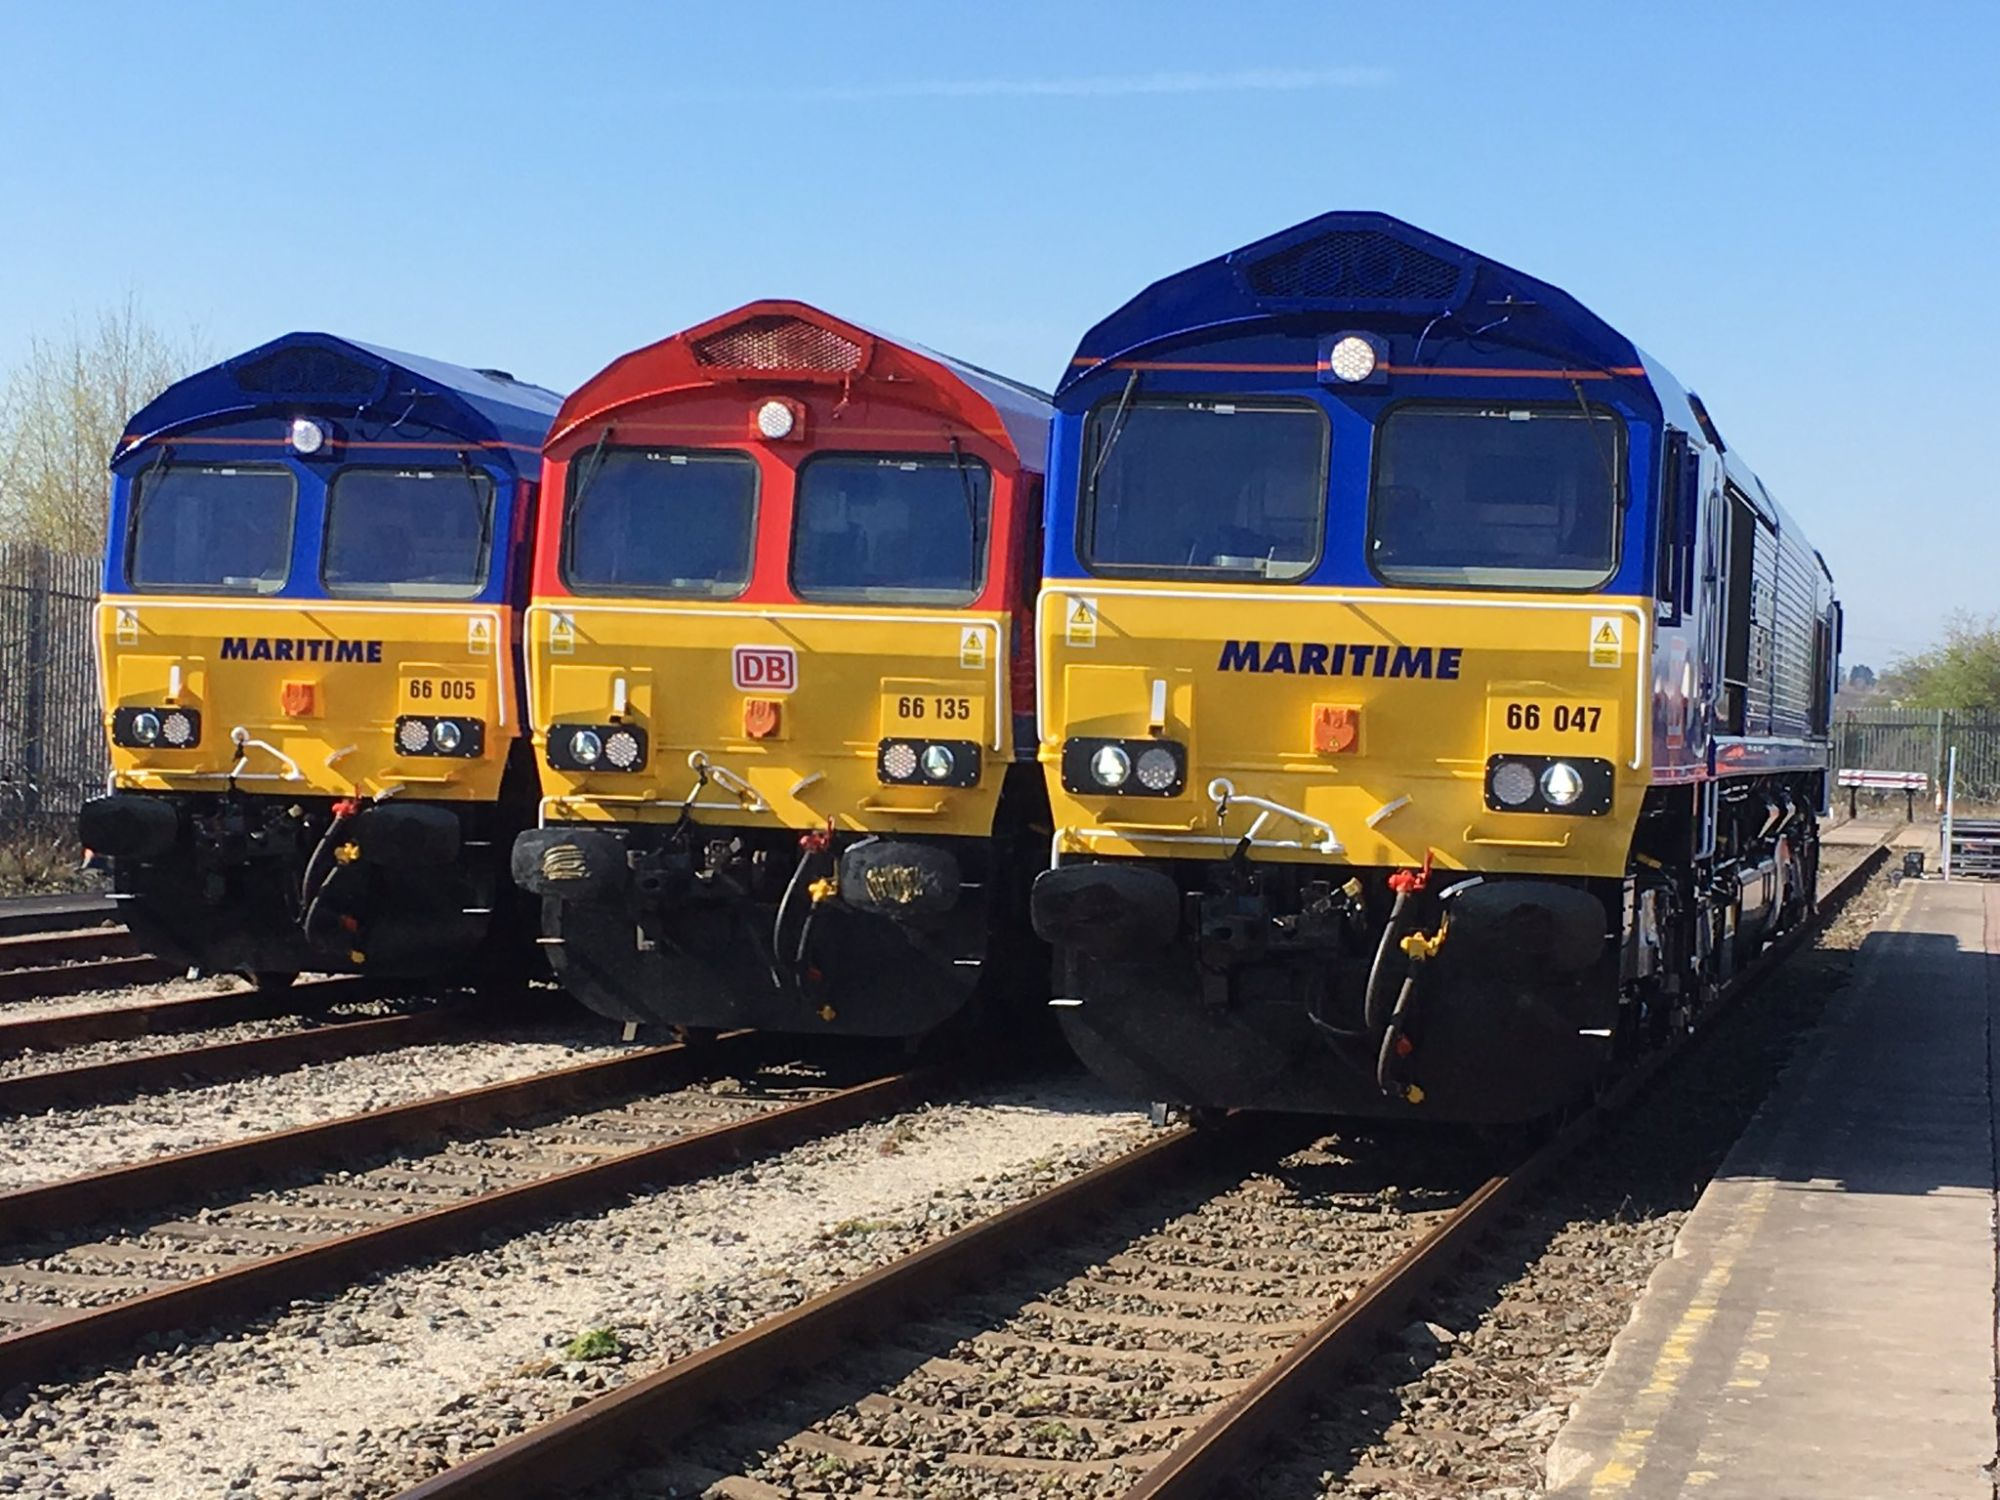 Image showing Class 66 locomotives in new Maritime Intermodal livery